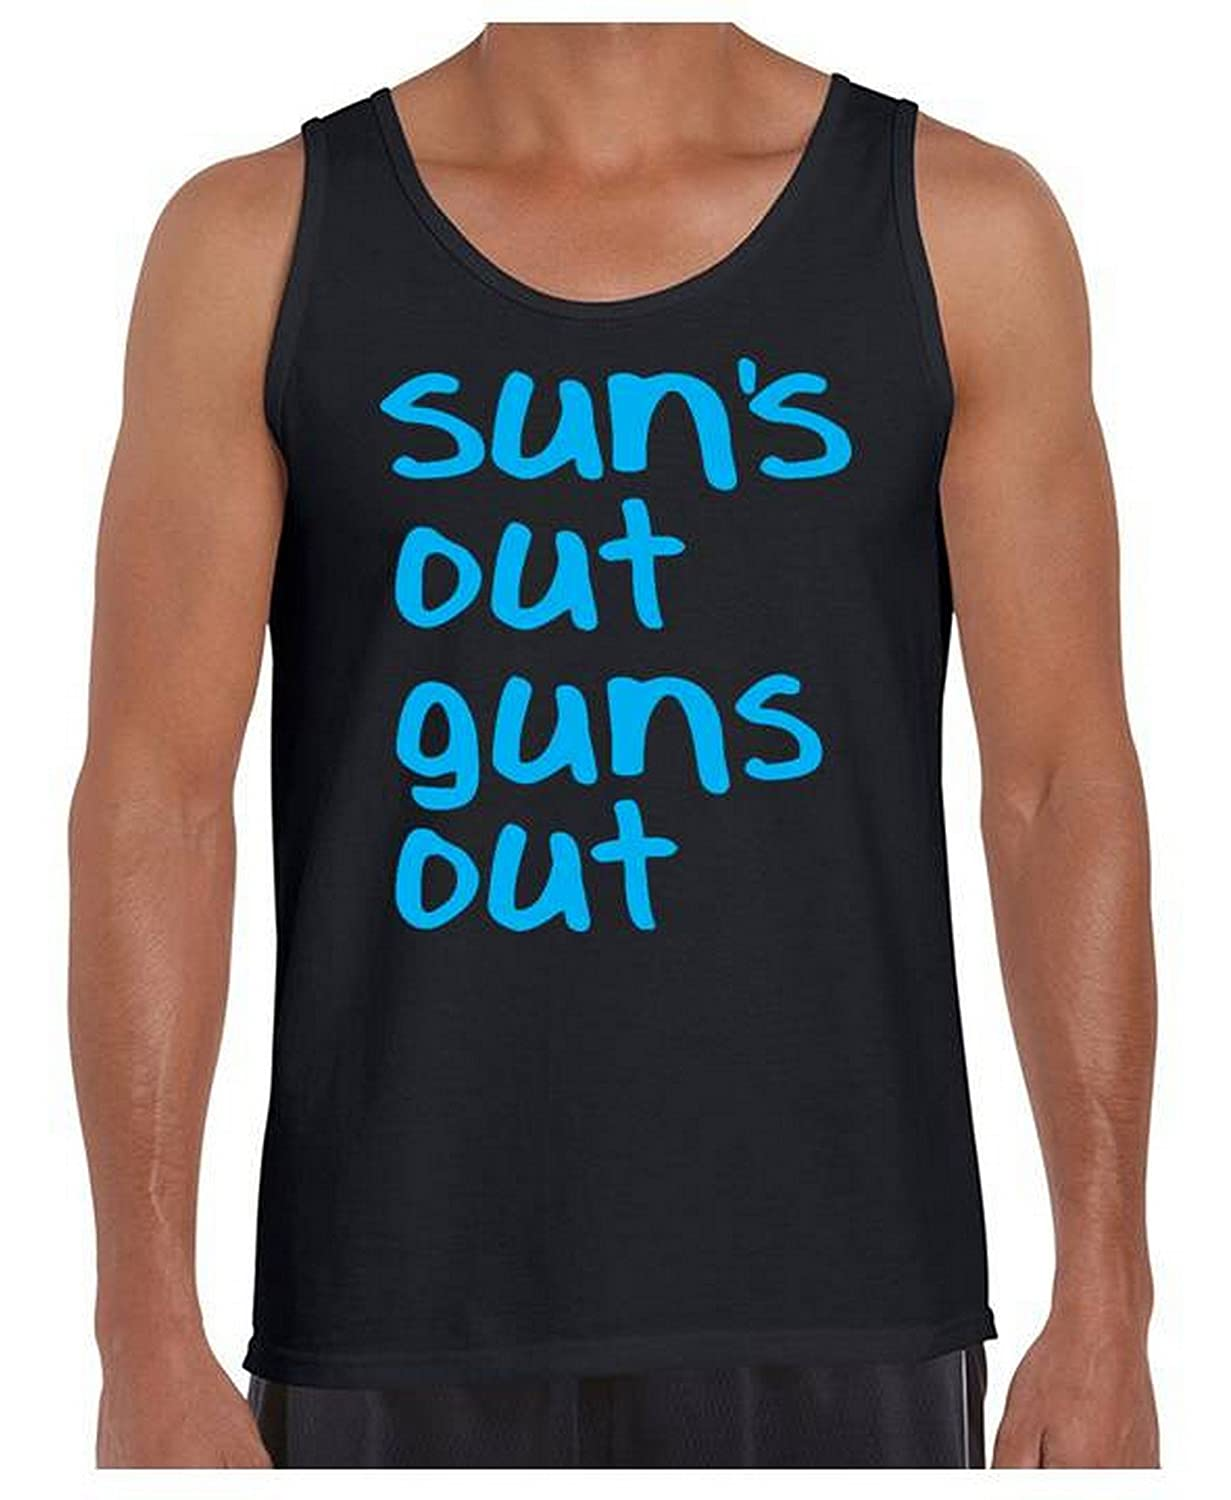 0d759fed306 Amazon.com  Awkwardstyles Suns Out Guns Out Tank Top Funny Gym Shirt +  Bookmark  Clothing